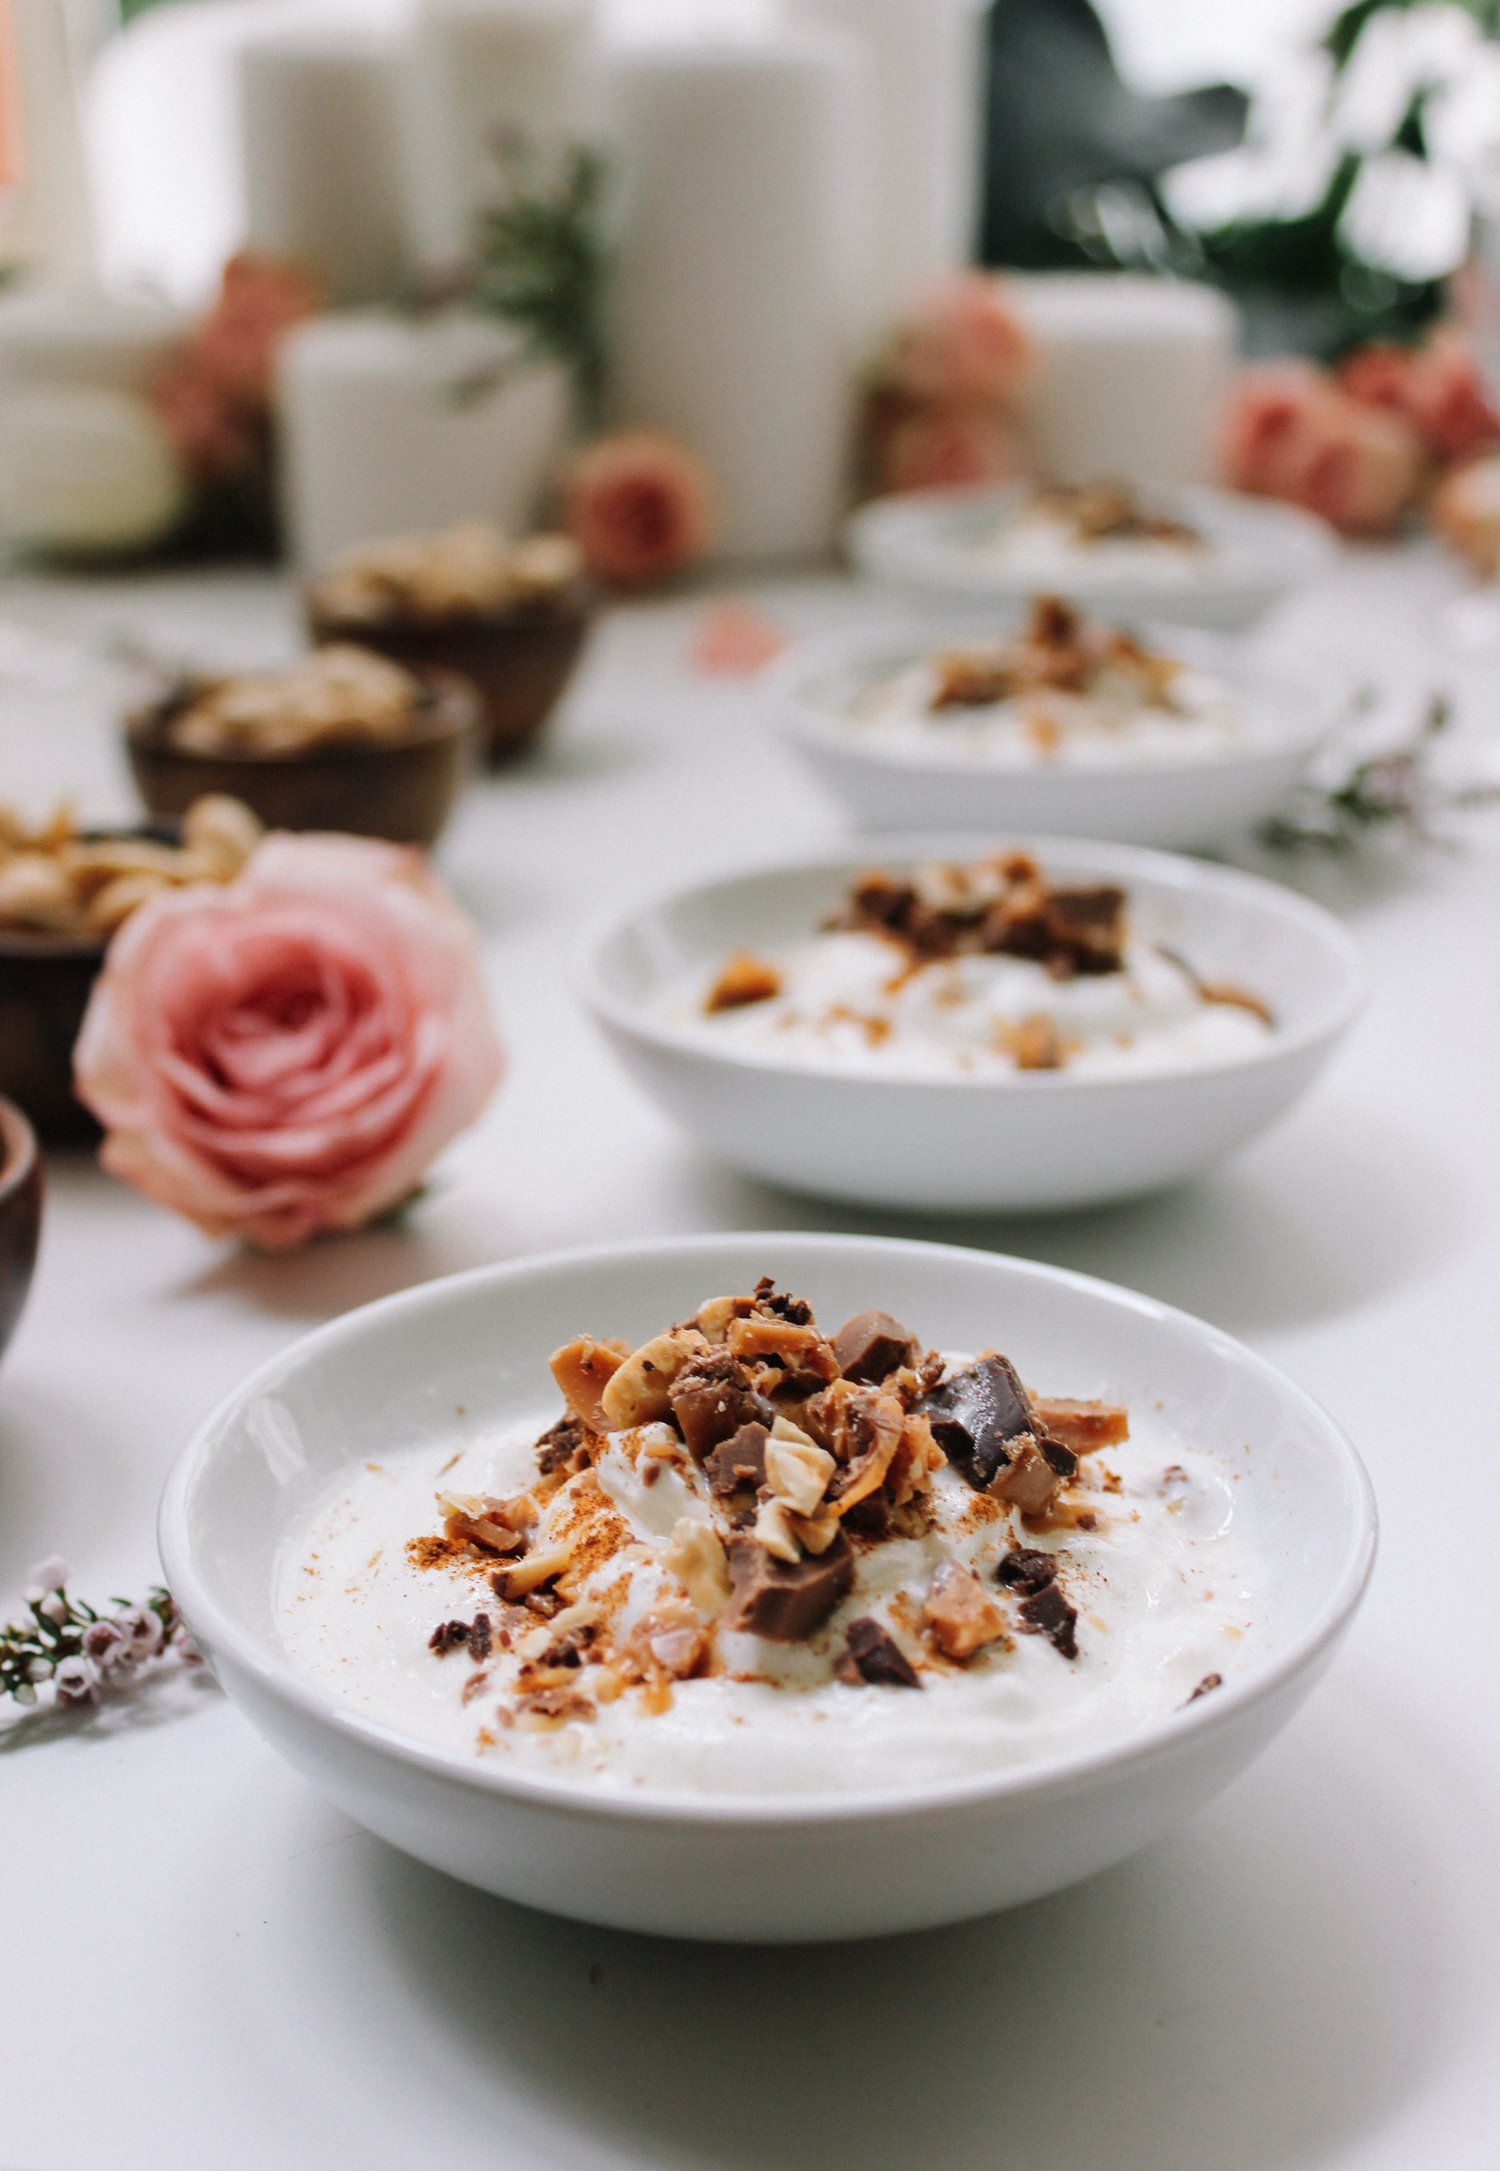 Greek yogurt with your fave crushed candy is such an easy dessert when entertaining | A Fabulous Fete